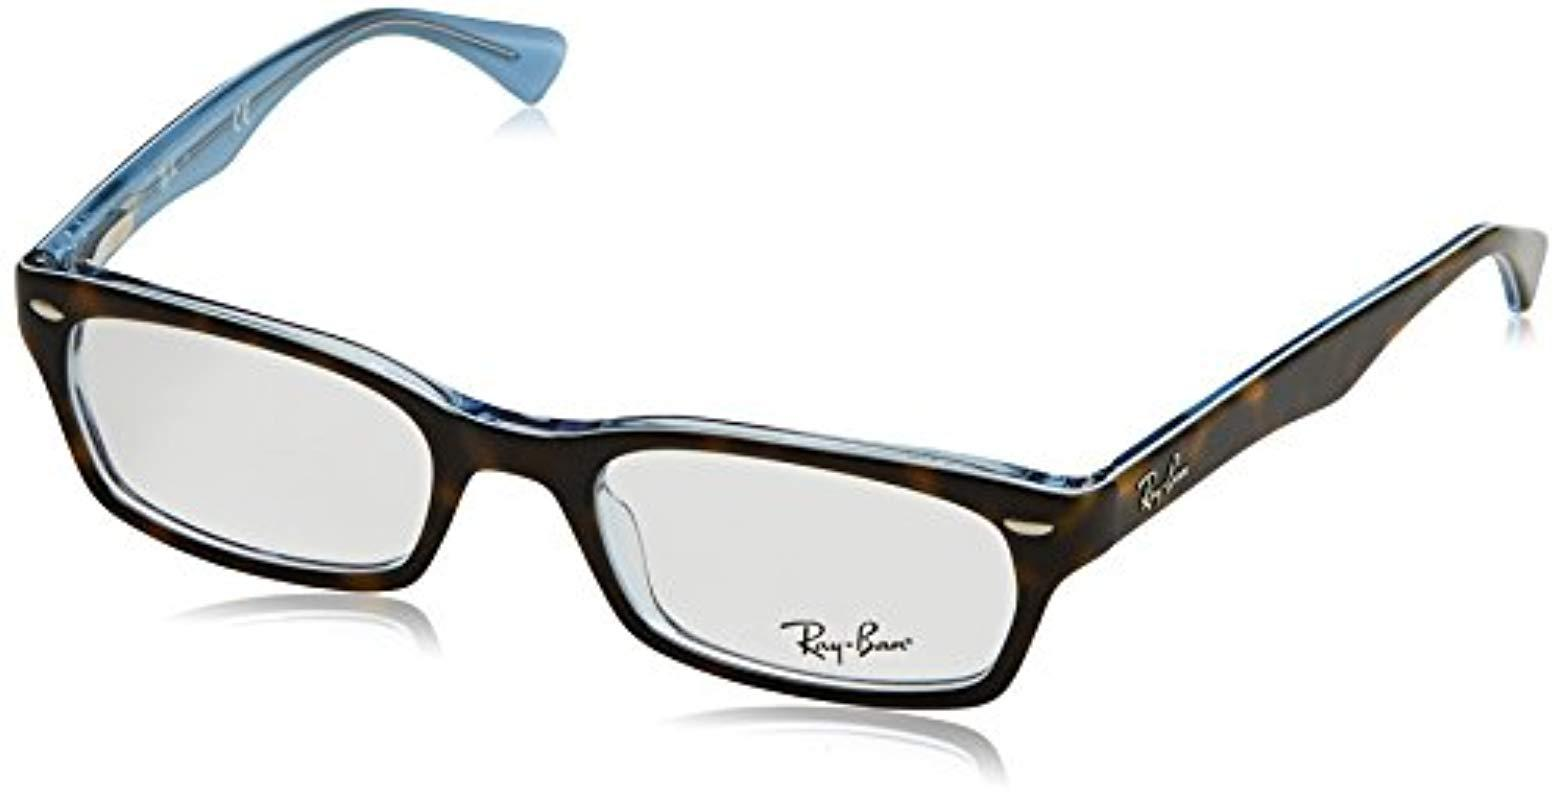 36e129a0e6 Ray-Ban Rx5150 Glasses In Havana On Azure Rx5150 5023 50 in Black - Lyst